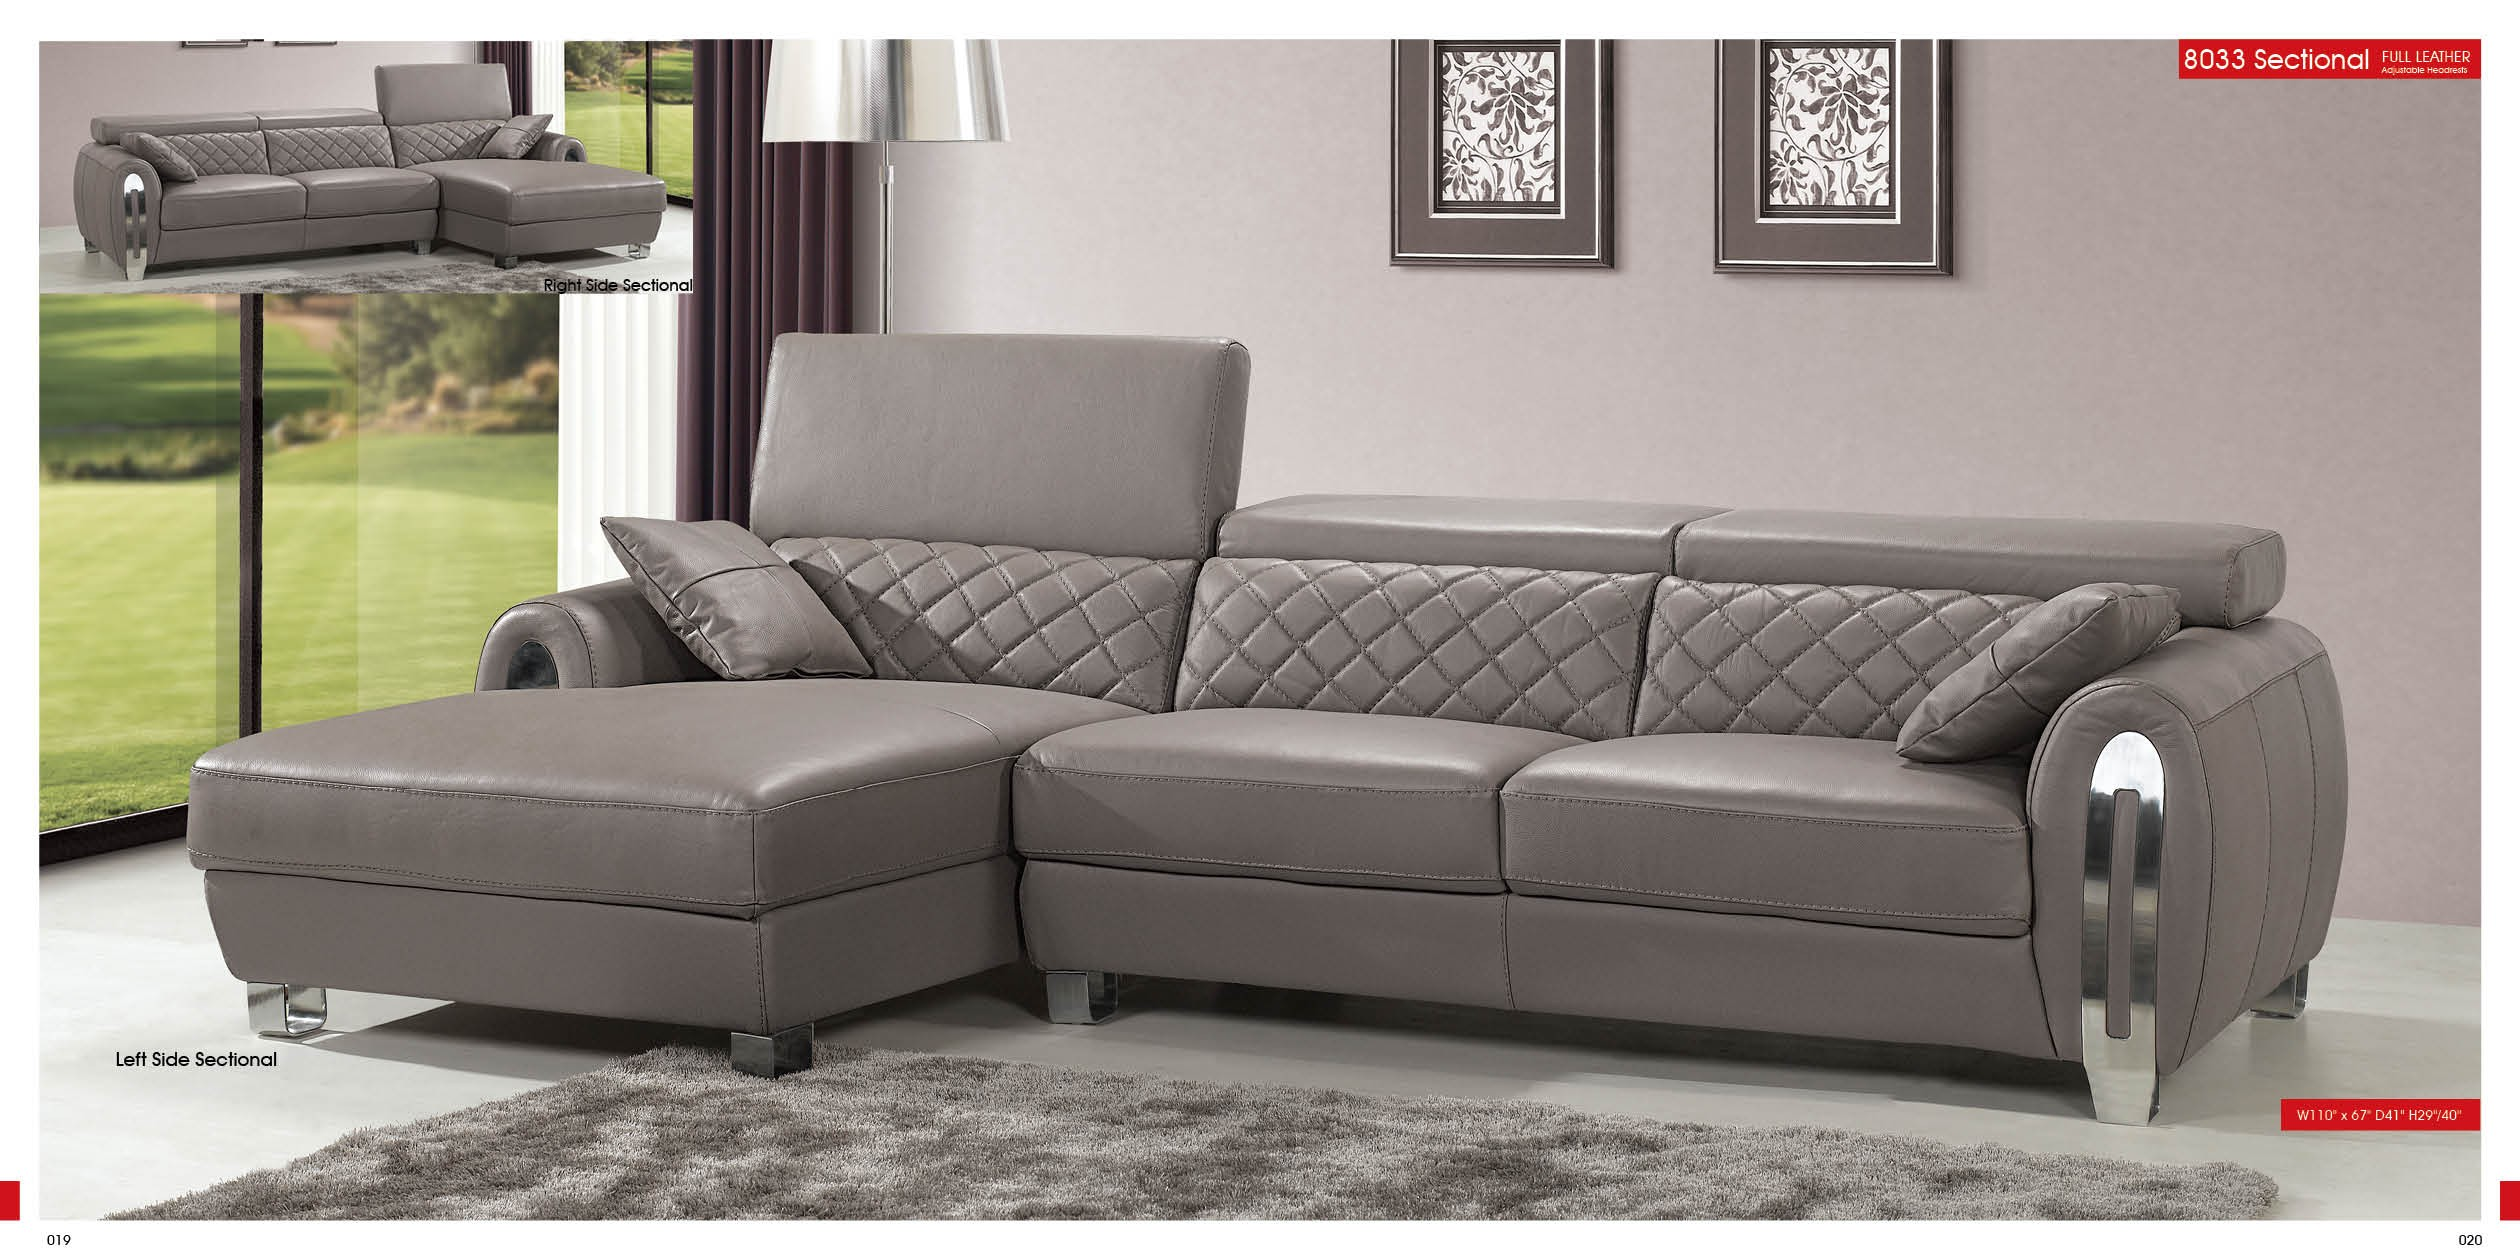 8033 Sectional By ESF